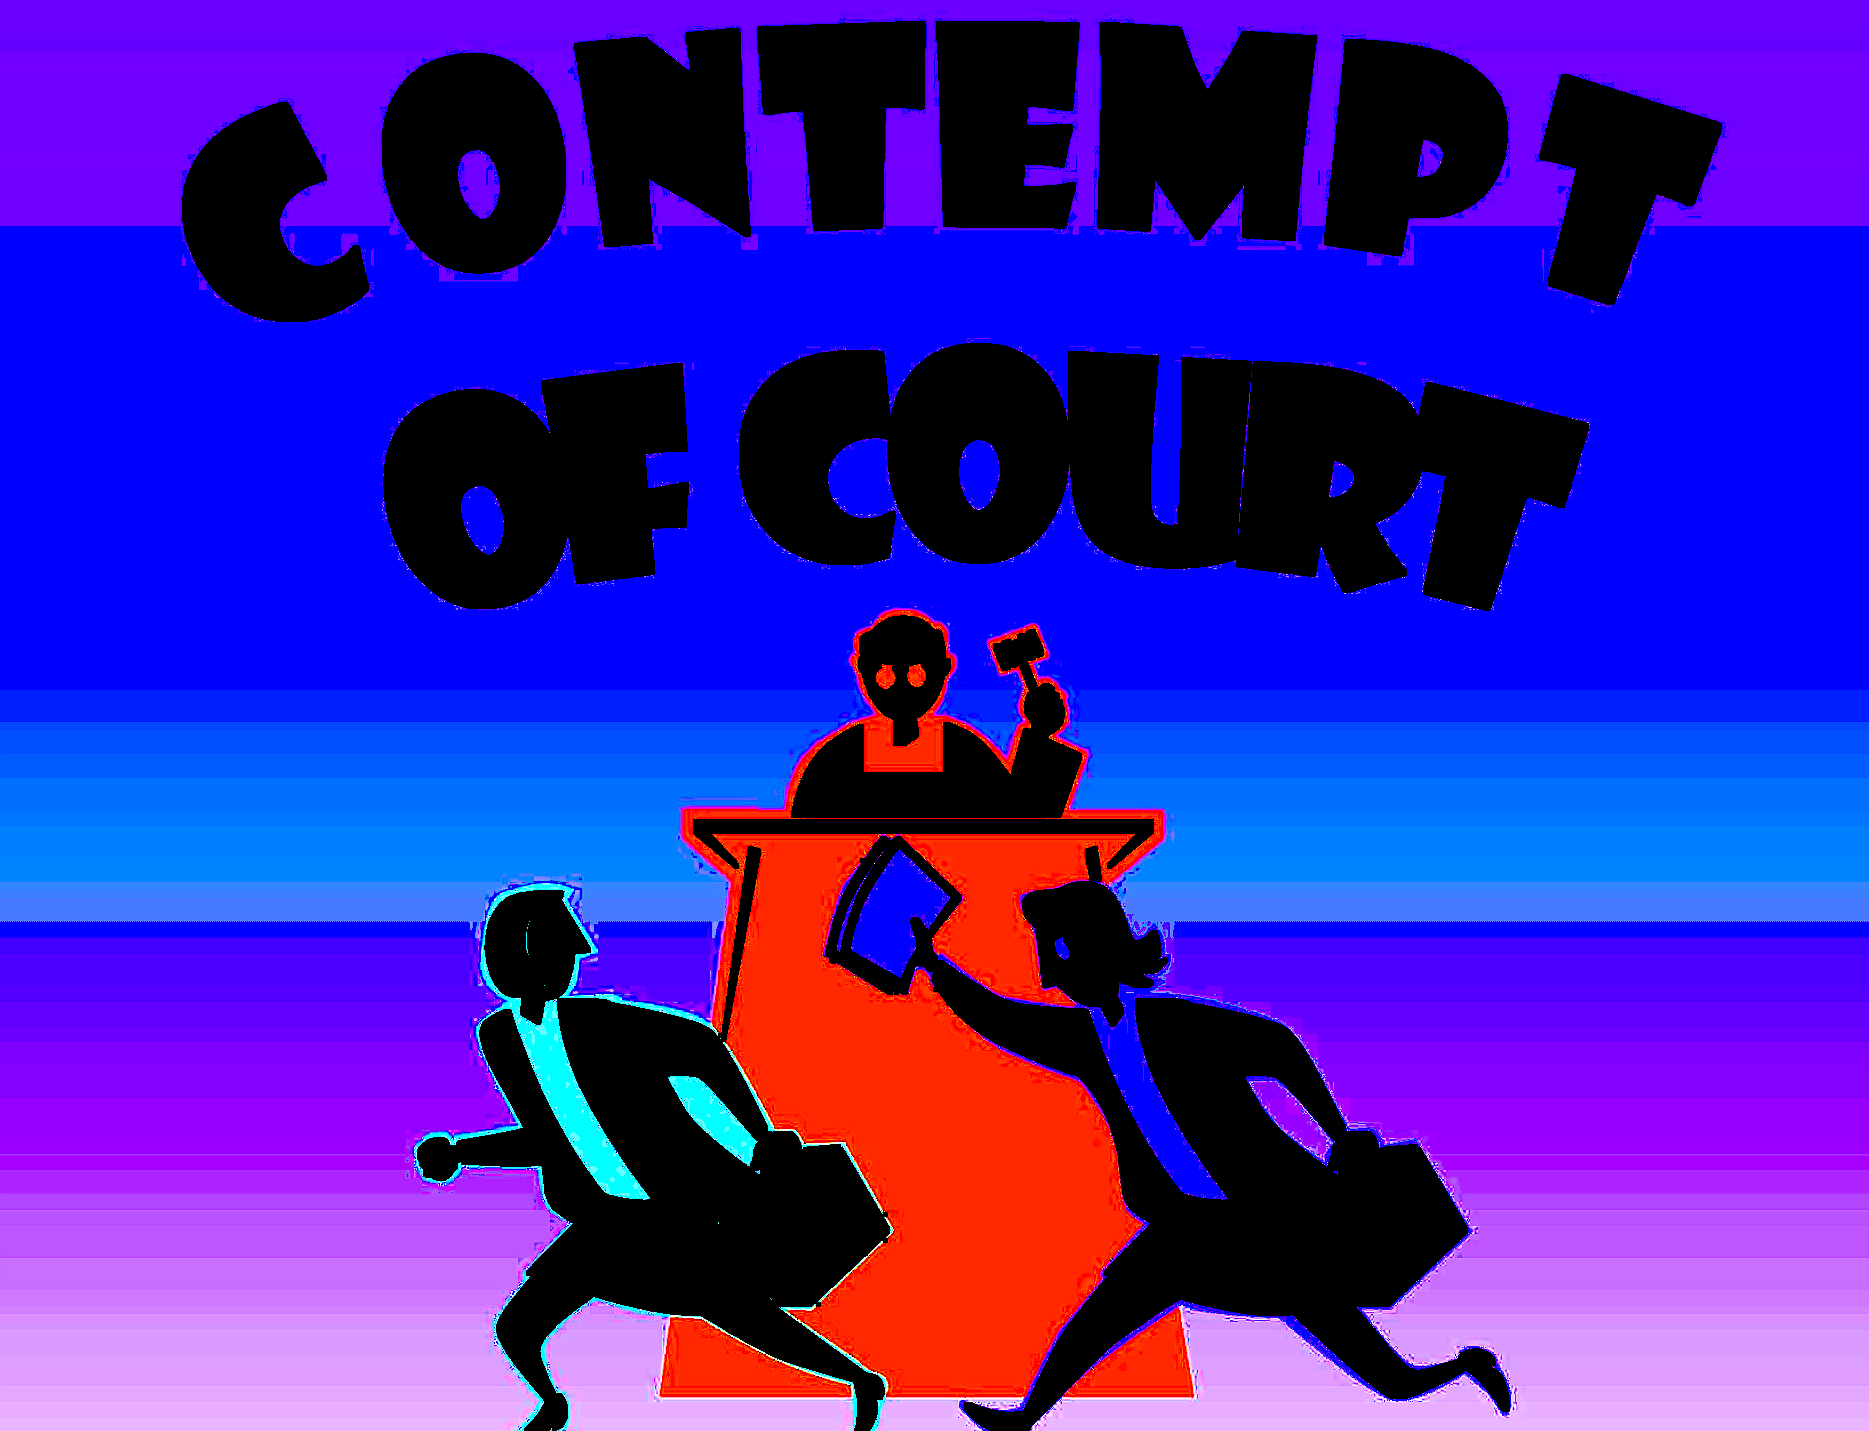 Daily legal advice series. Bad clipart contempt